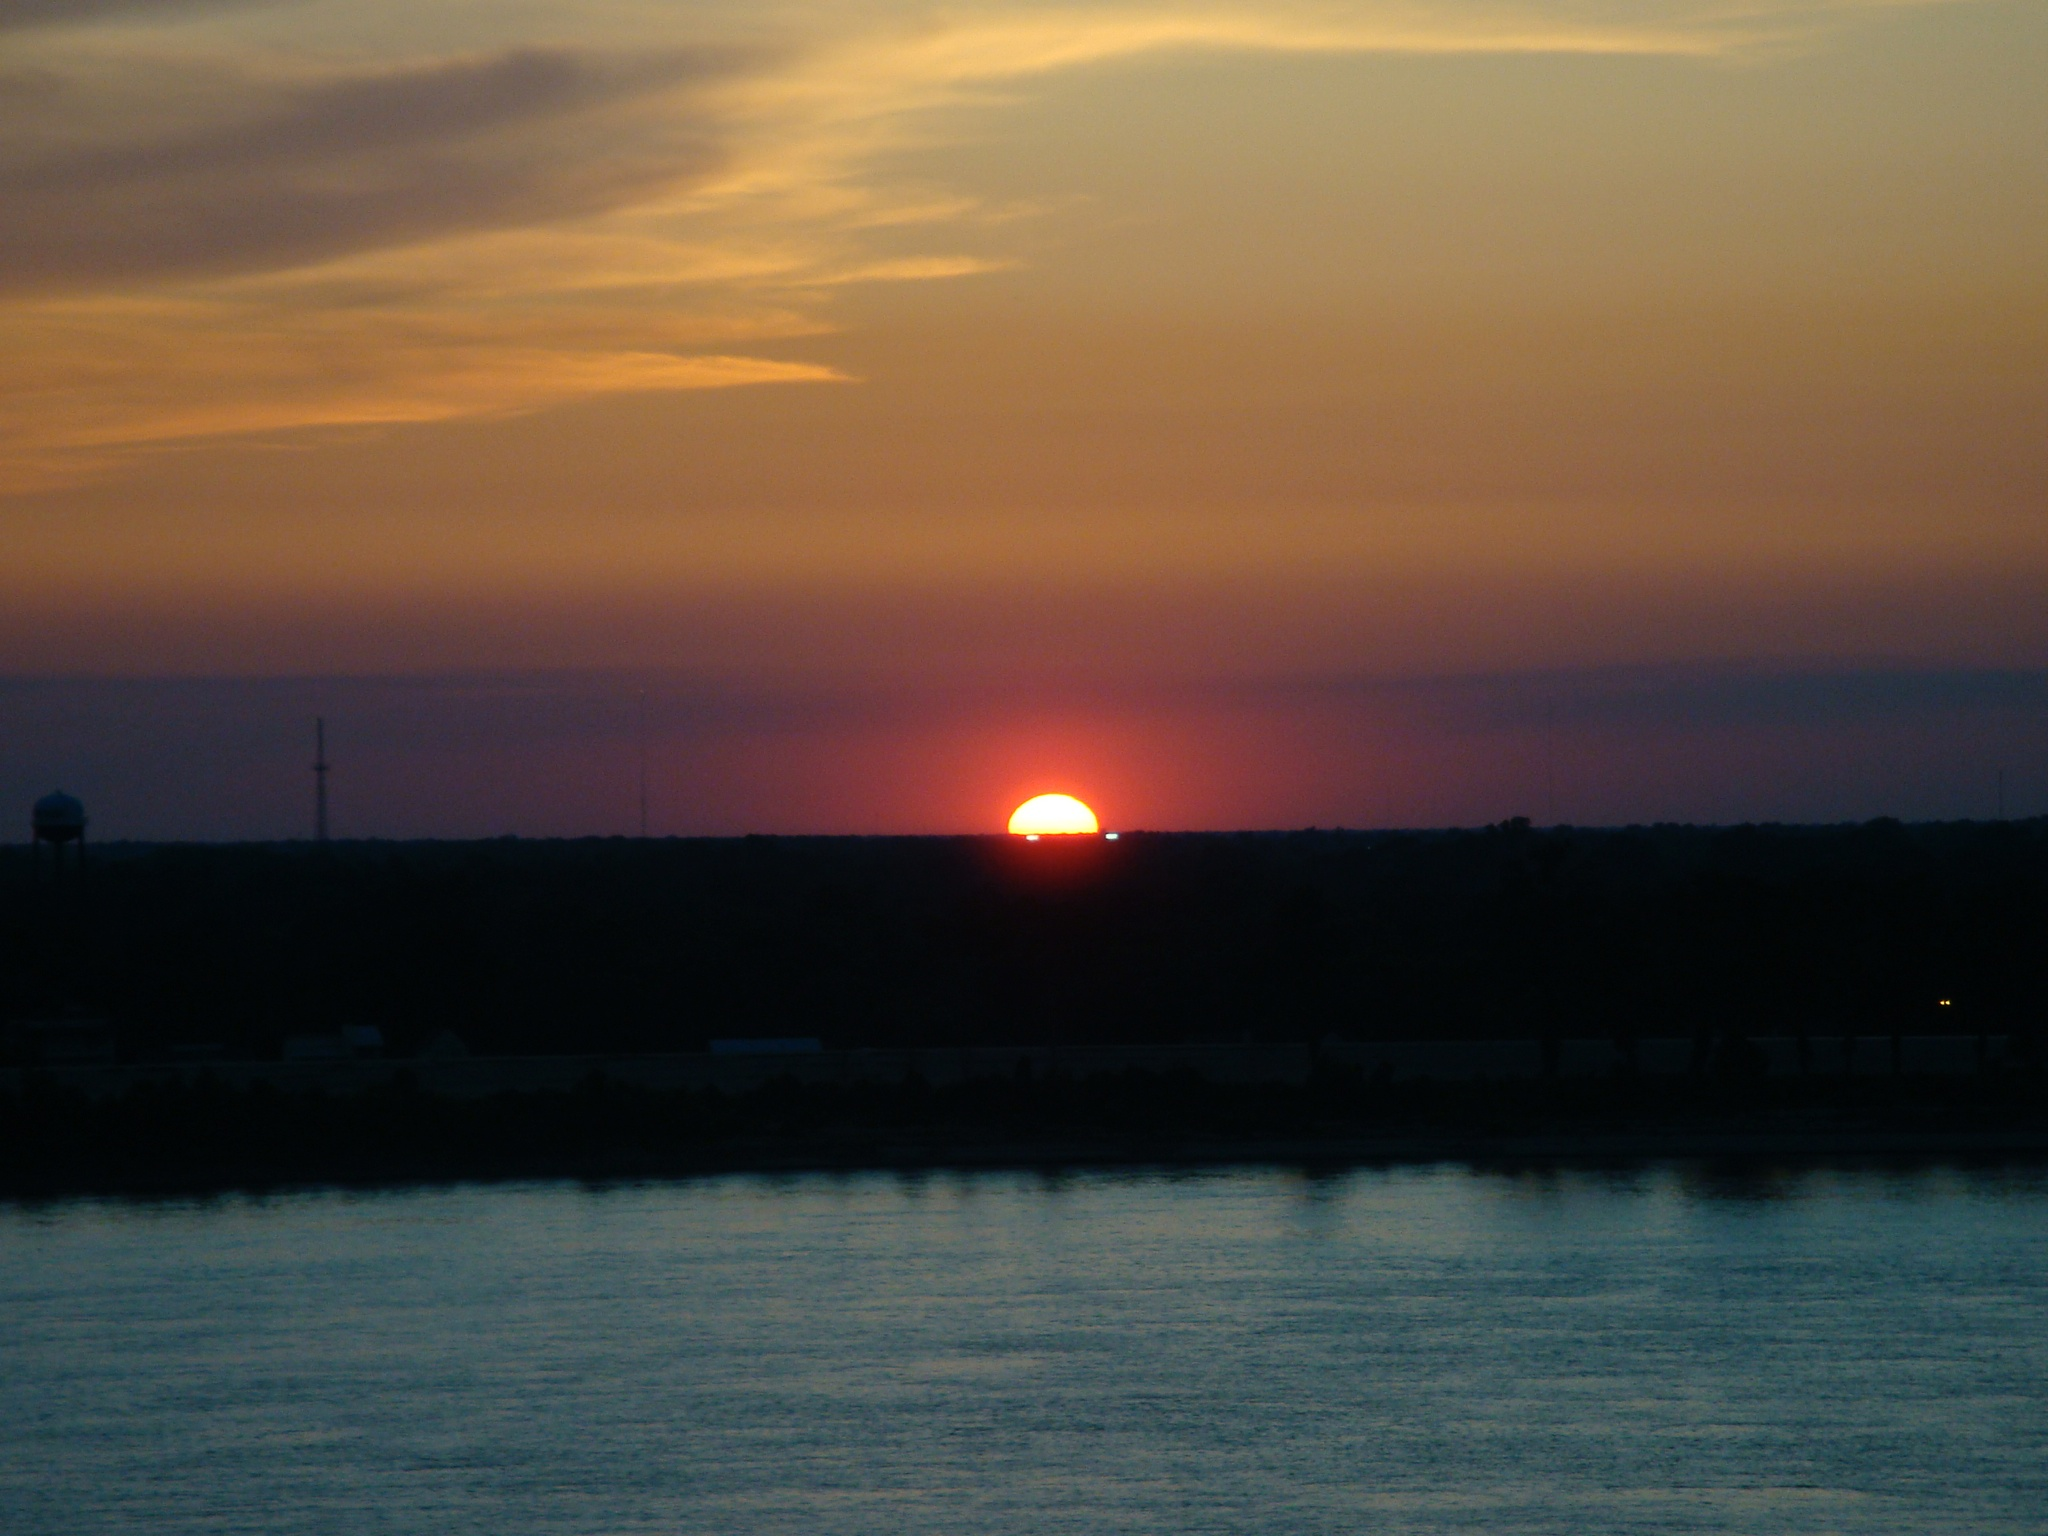 Sunset in Baton Rouge Louisiana